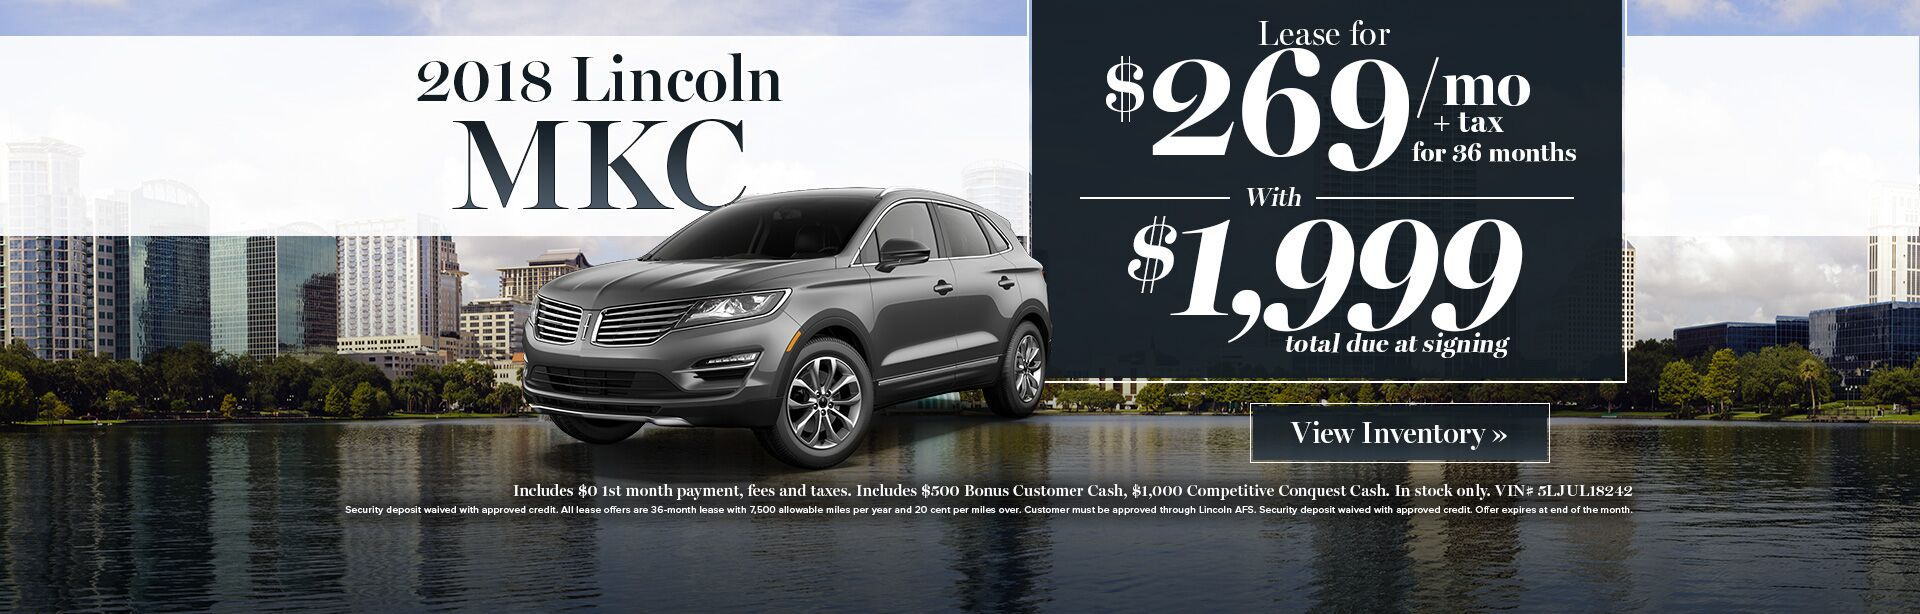 2018 Lincoln MKC lease special